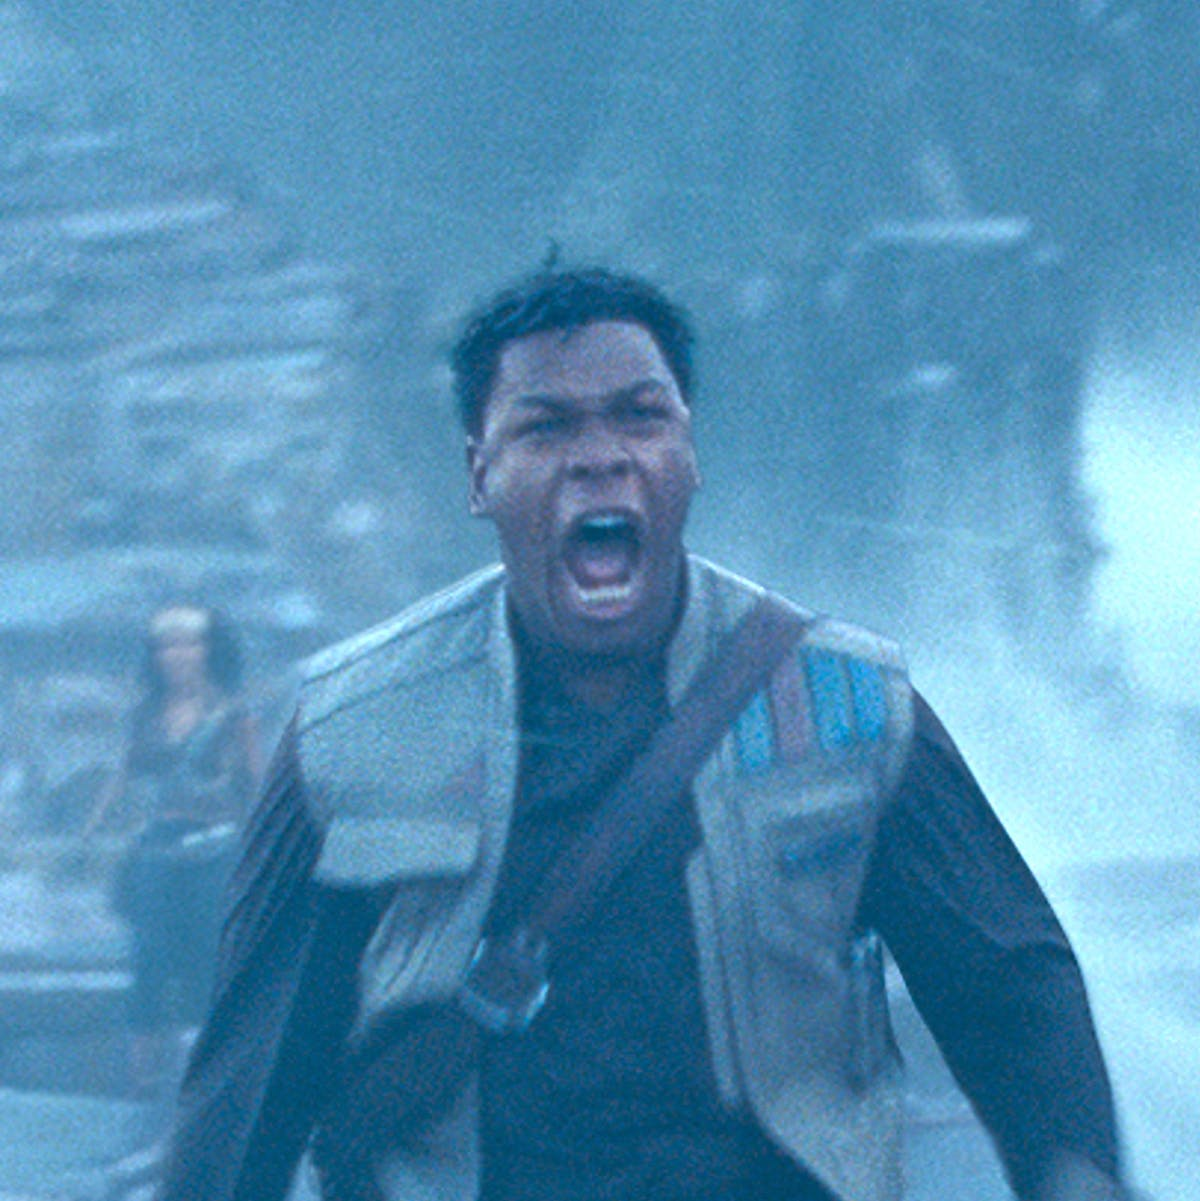 John Boyega may have spoiled who survives in 'Star Wars: Rise of Skywalker'